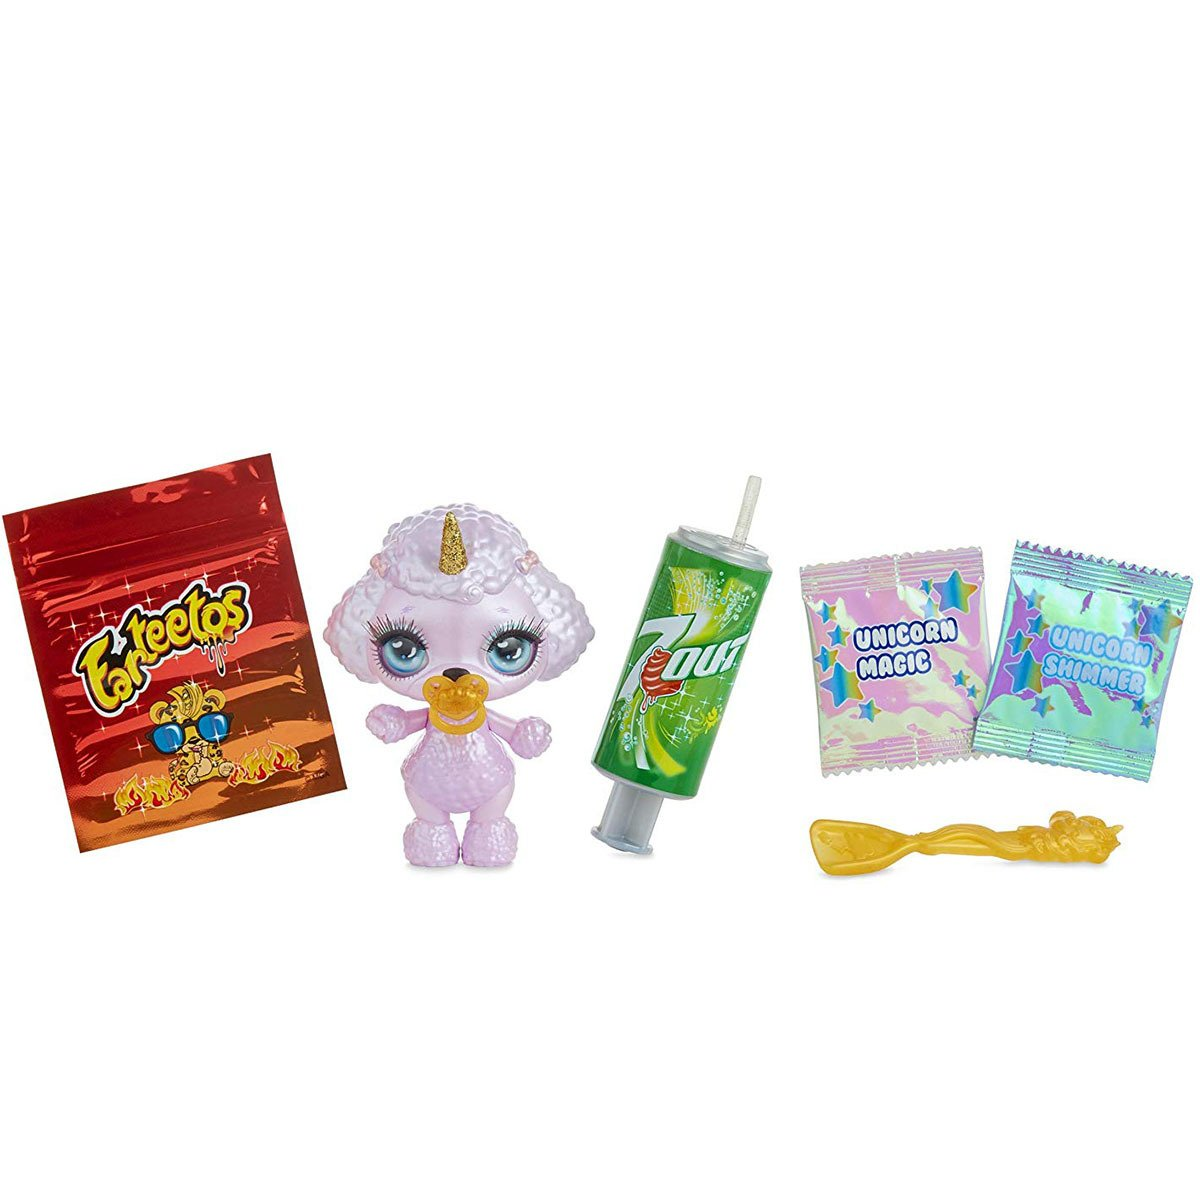 POOPSIE SPARKLY CRITTERS PUSZKA